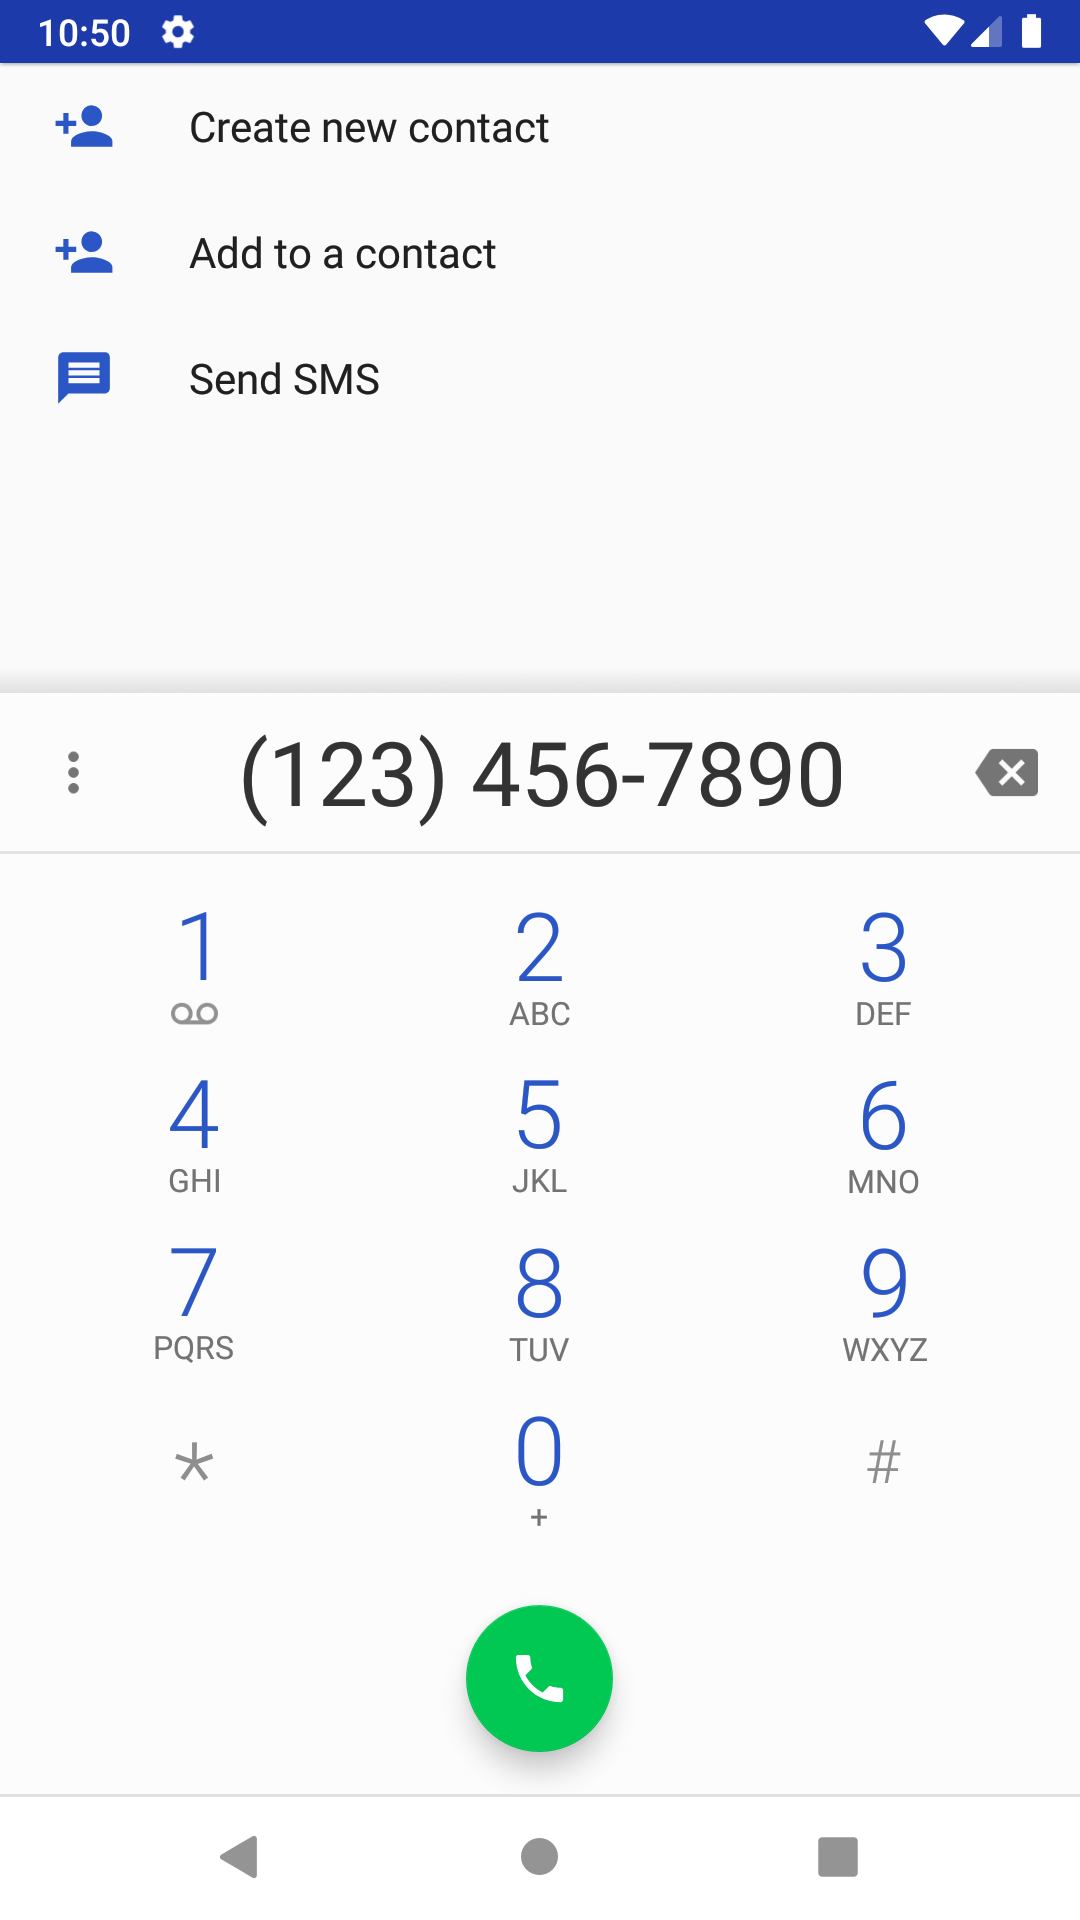 React Native Make a Phone Call - Open Phone Number in Dial Screen